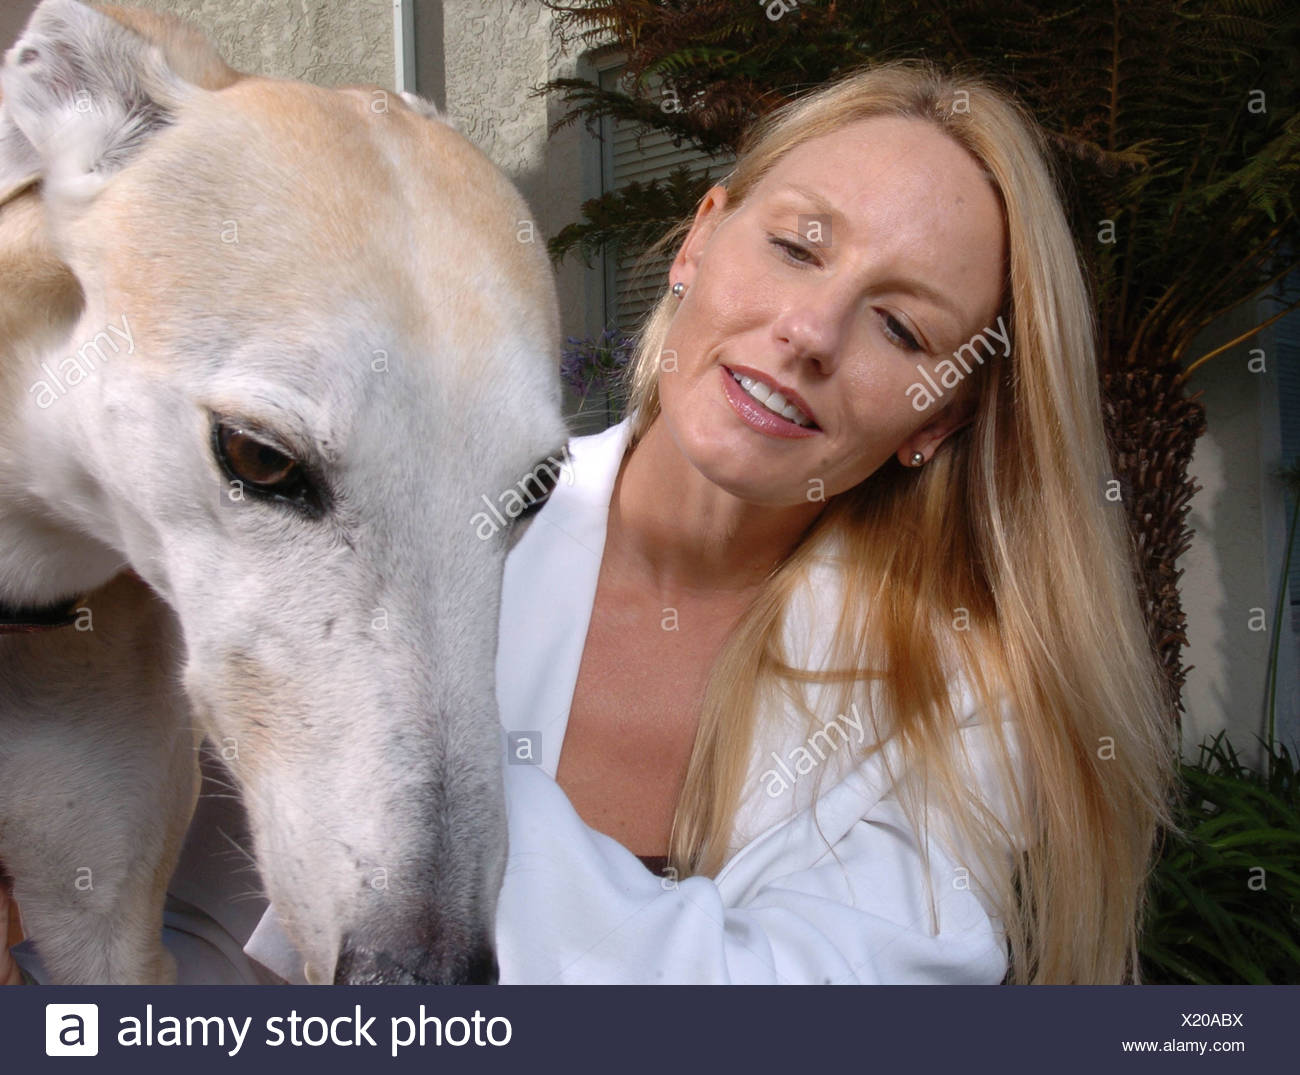 Lady pets her dog - Stock Image